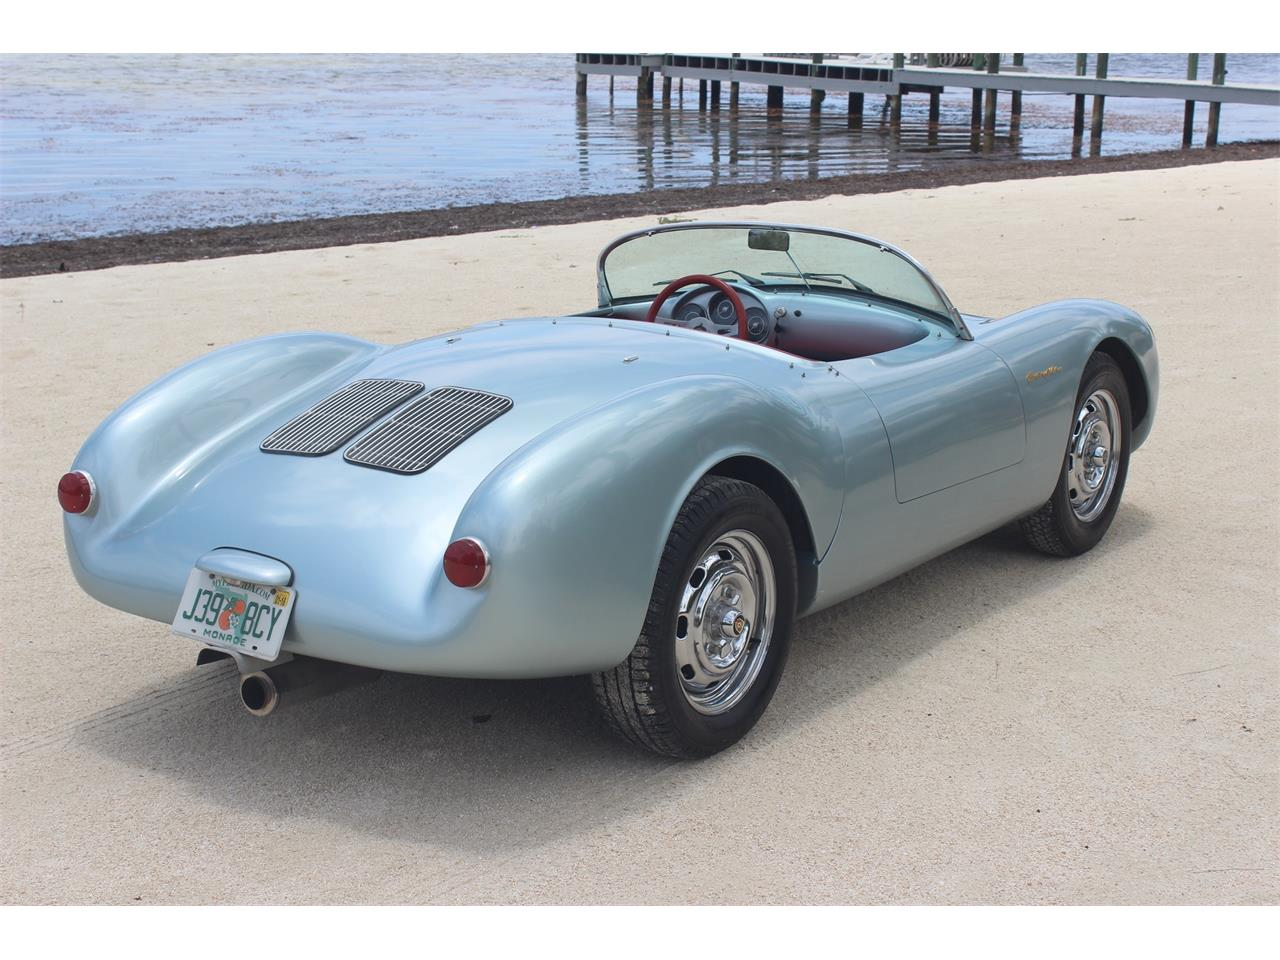 Large Picture of Classic '55 Porsche 550 Spyder Replica Offered by a Private Seller - FC5F